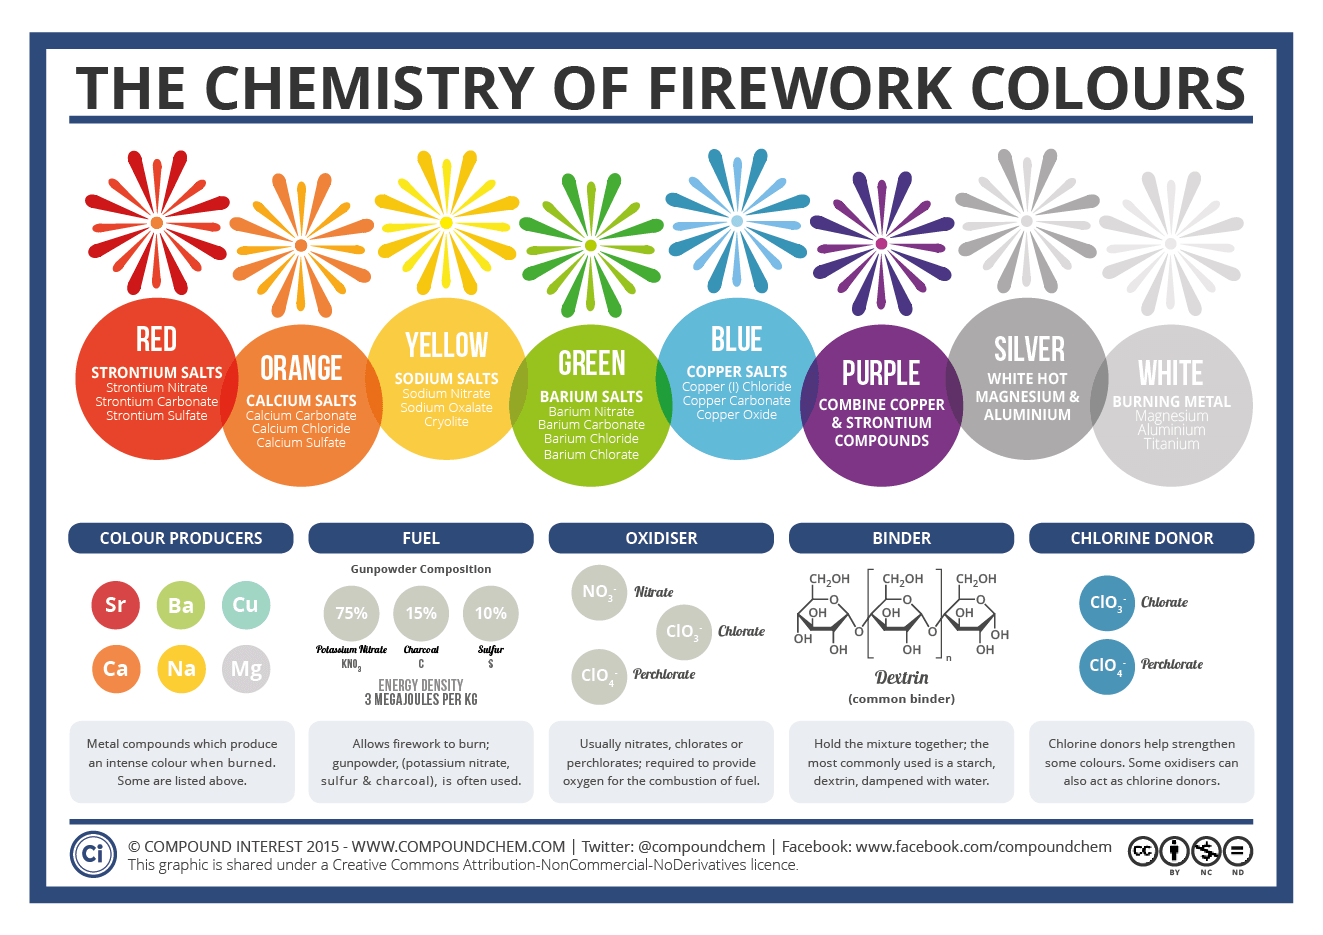 What Gives Fireworks Their Colors